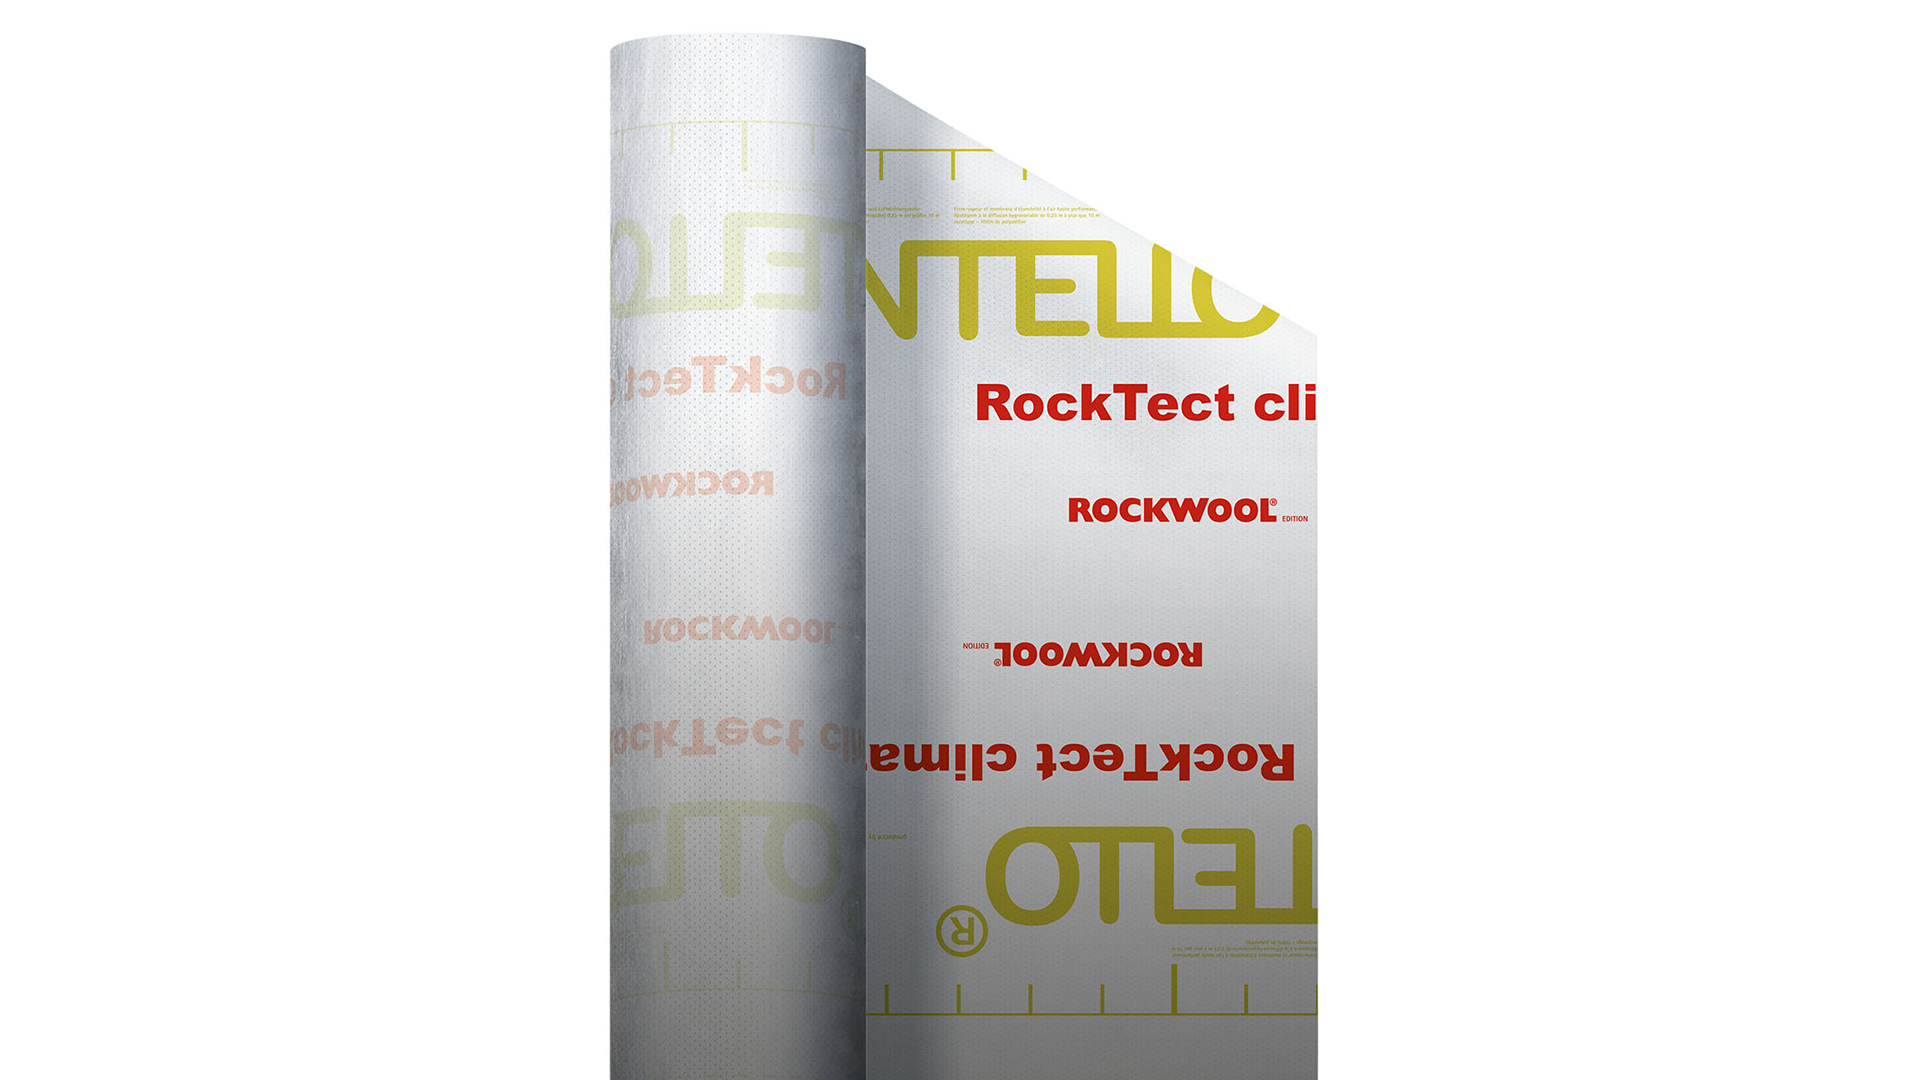 RockTect Intello Climate Plus, productfoto, accessoires